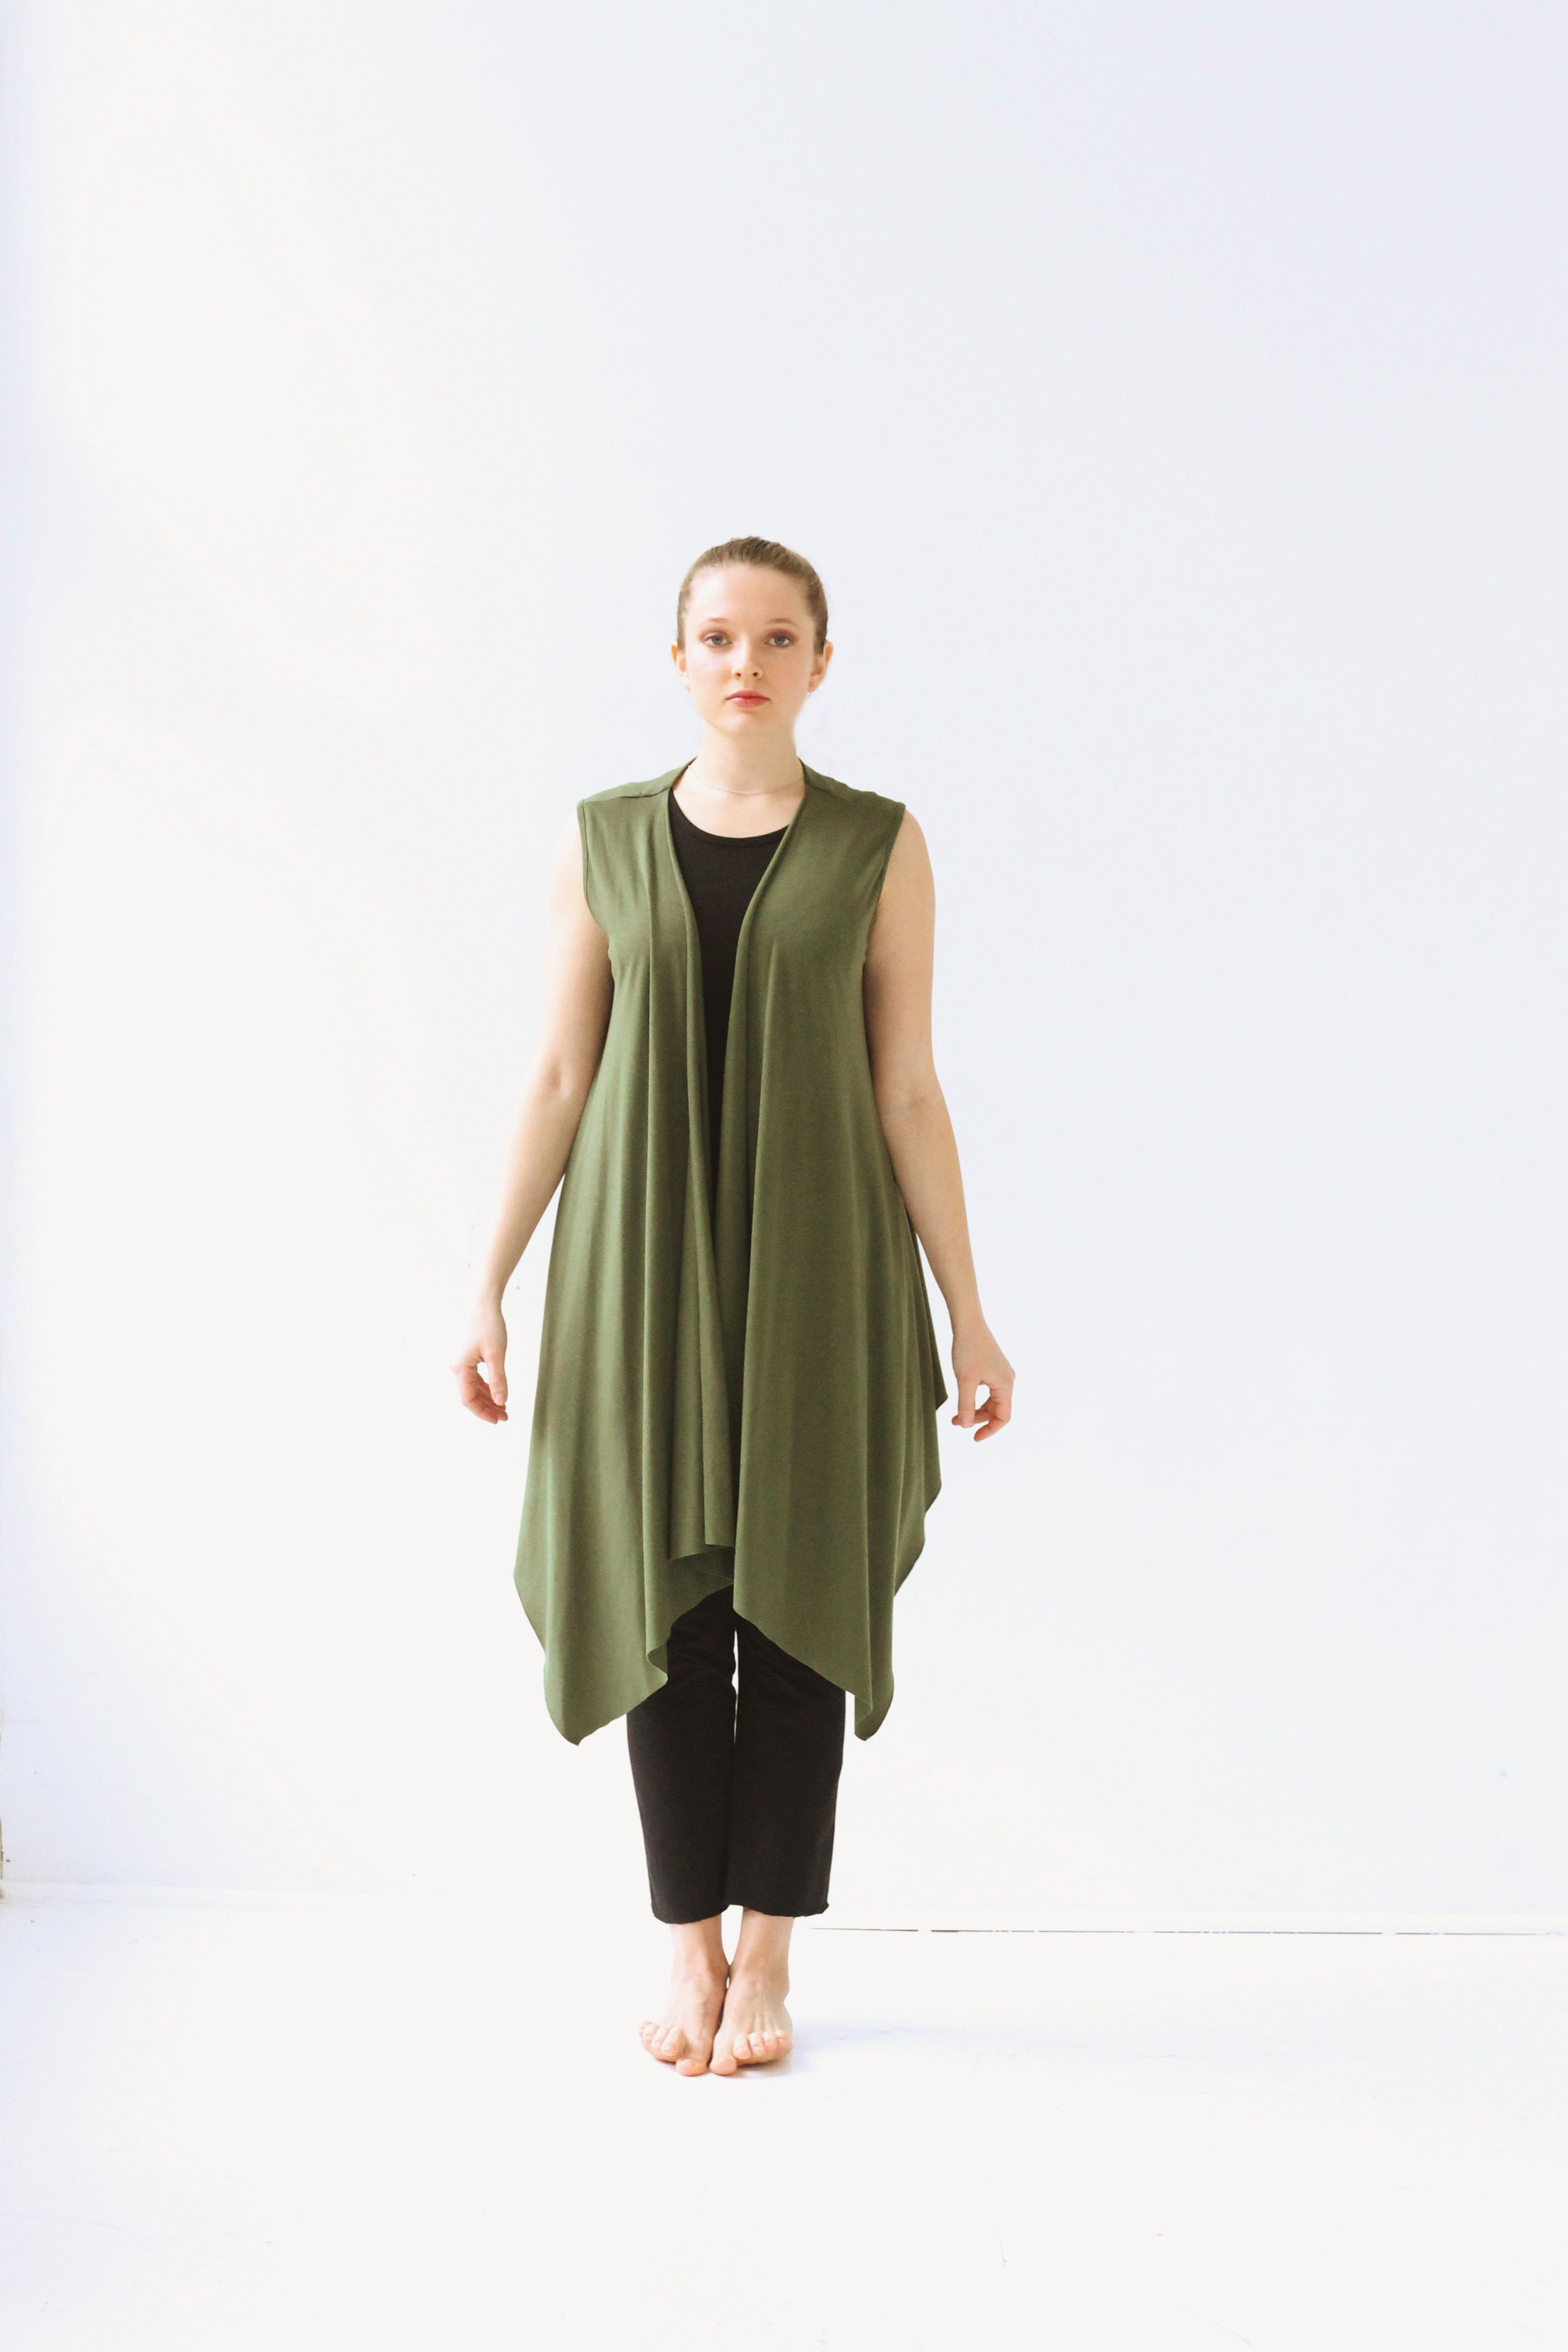 Green Long Waterfall Vest. This loose fitted vest is a great layering piece of shape and color. $79 Available at www.jqlovesu.com